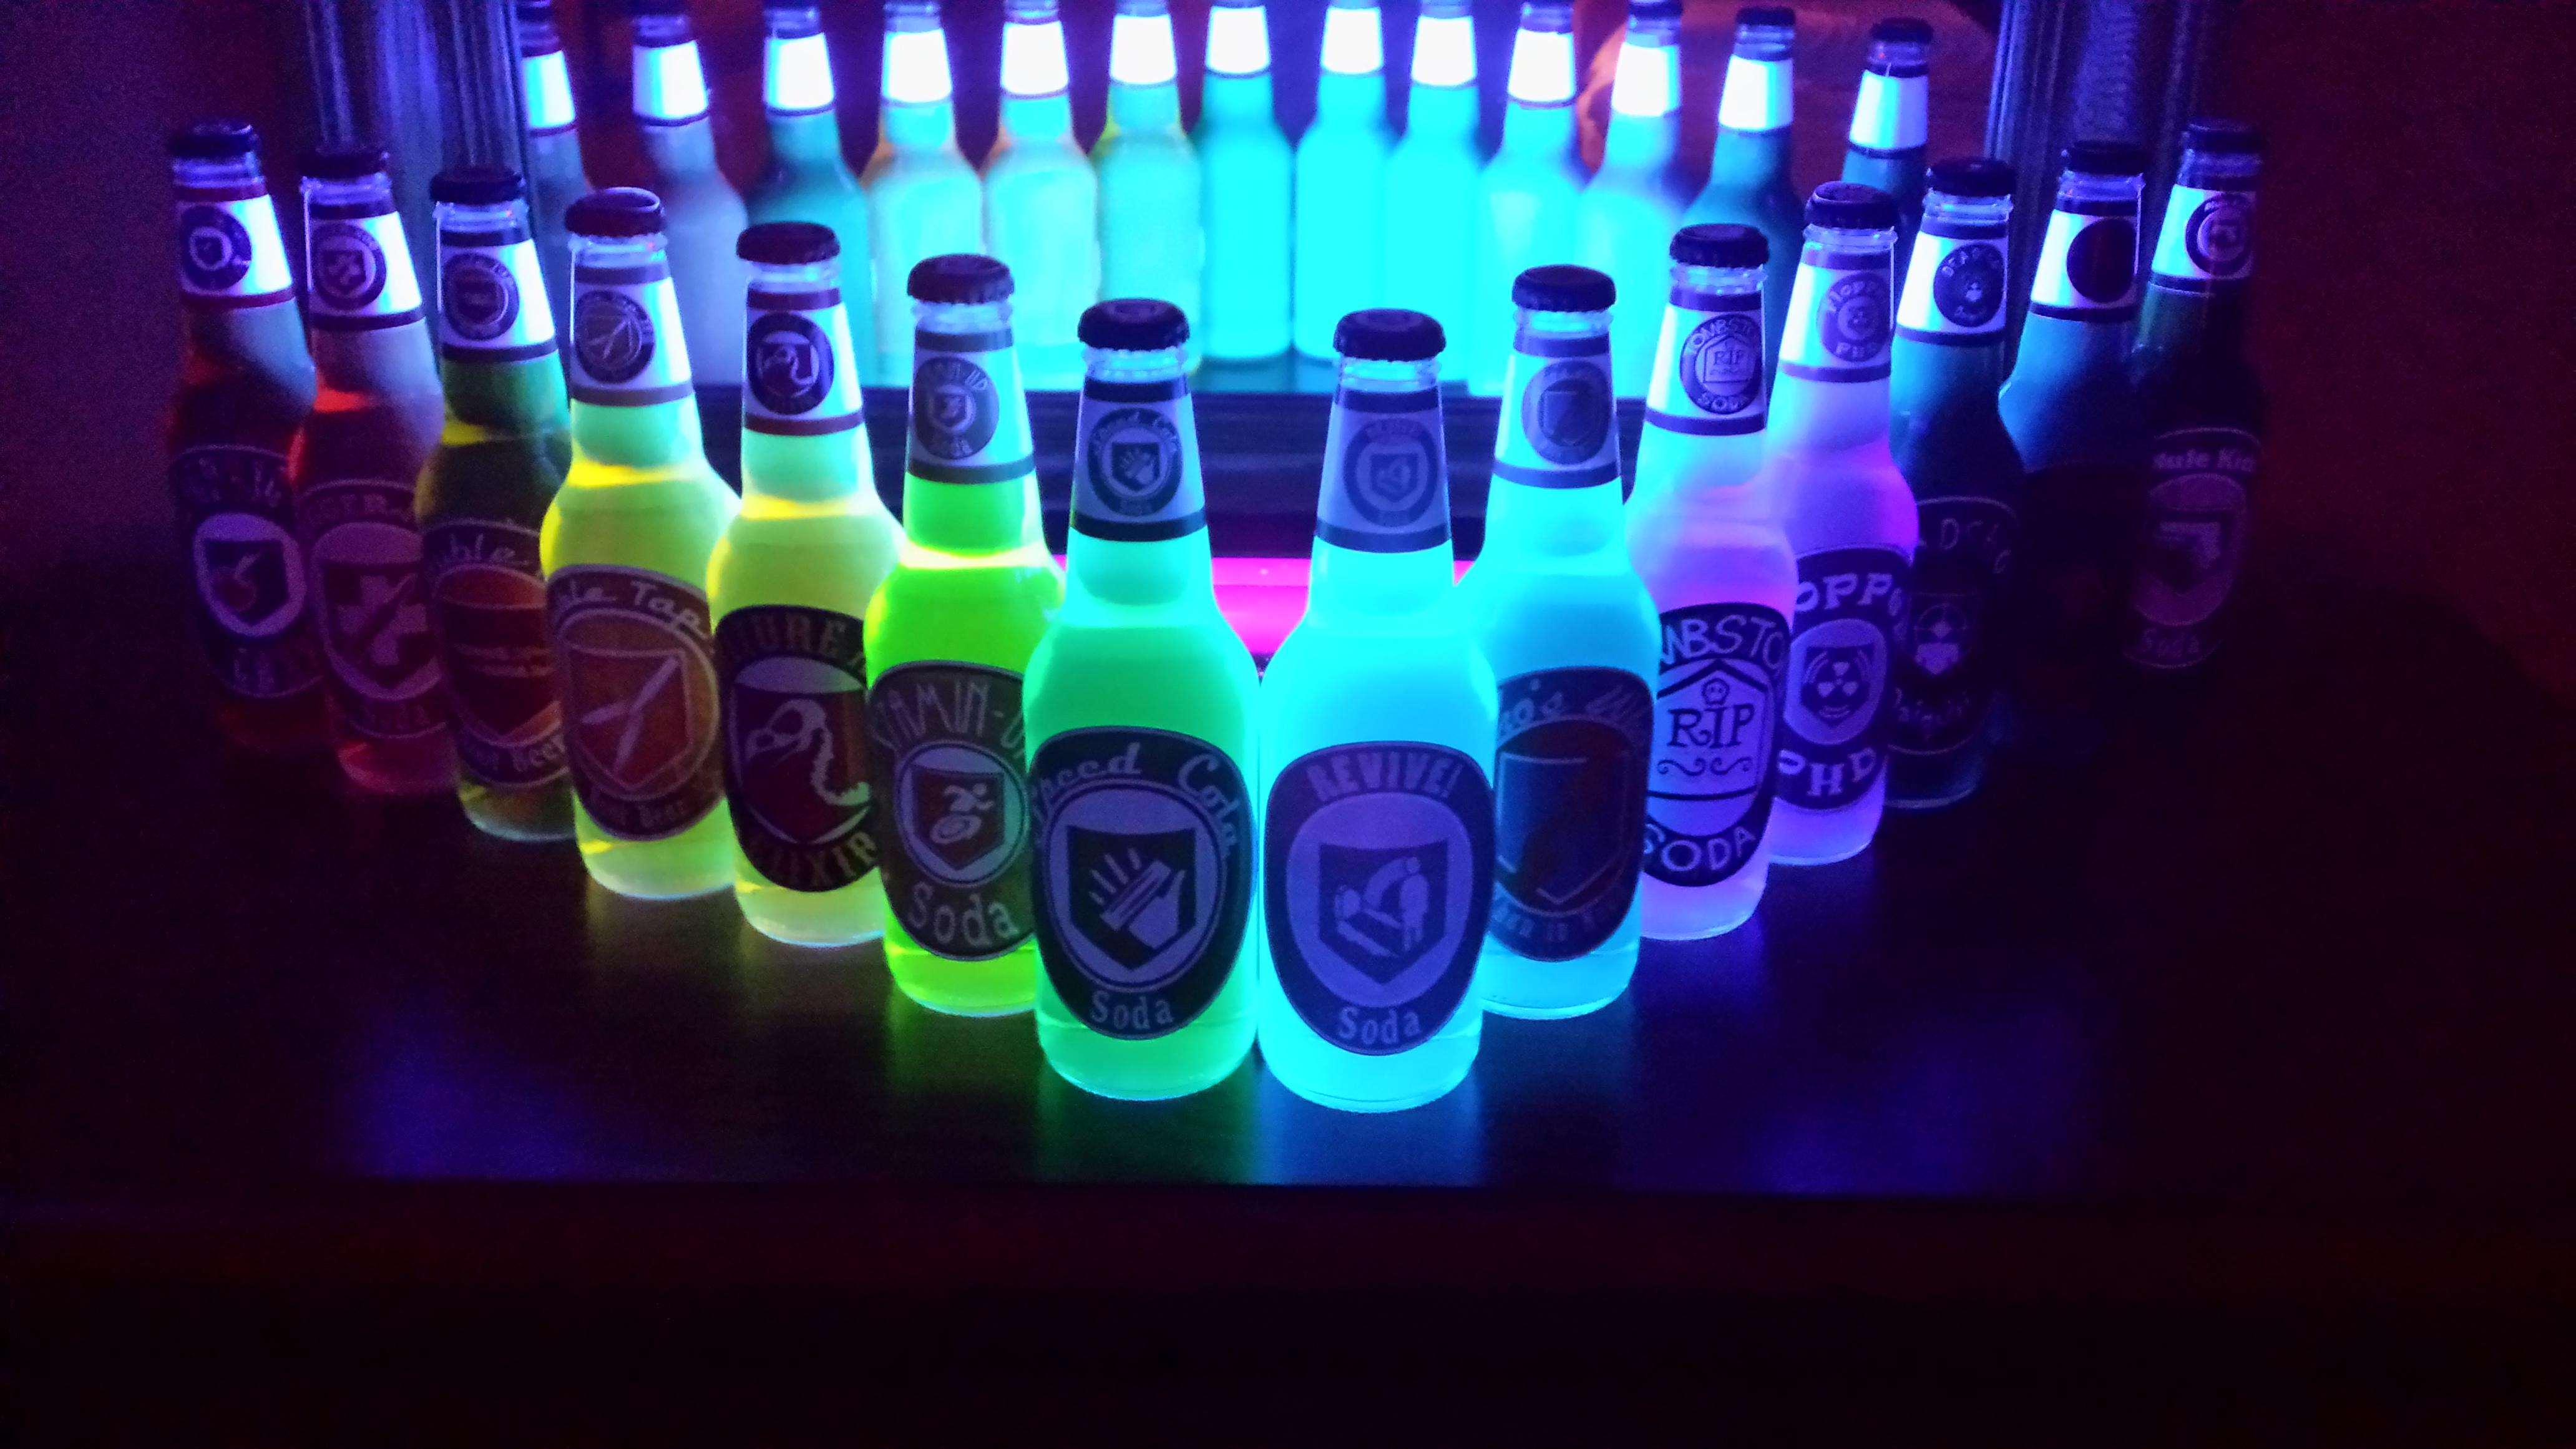 Juggernog Wallpaper Iphone A Lot Of You Guys Wanted To See My Perk Bottles Glowing